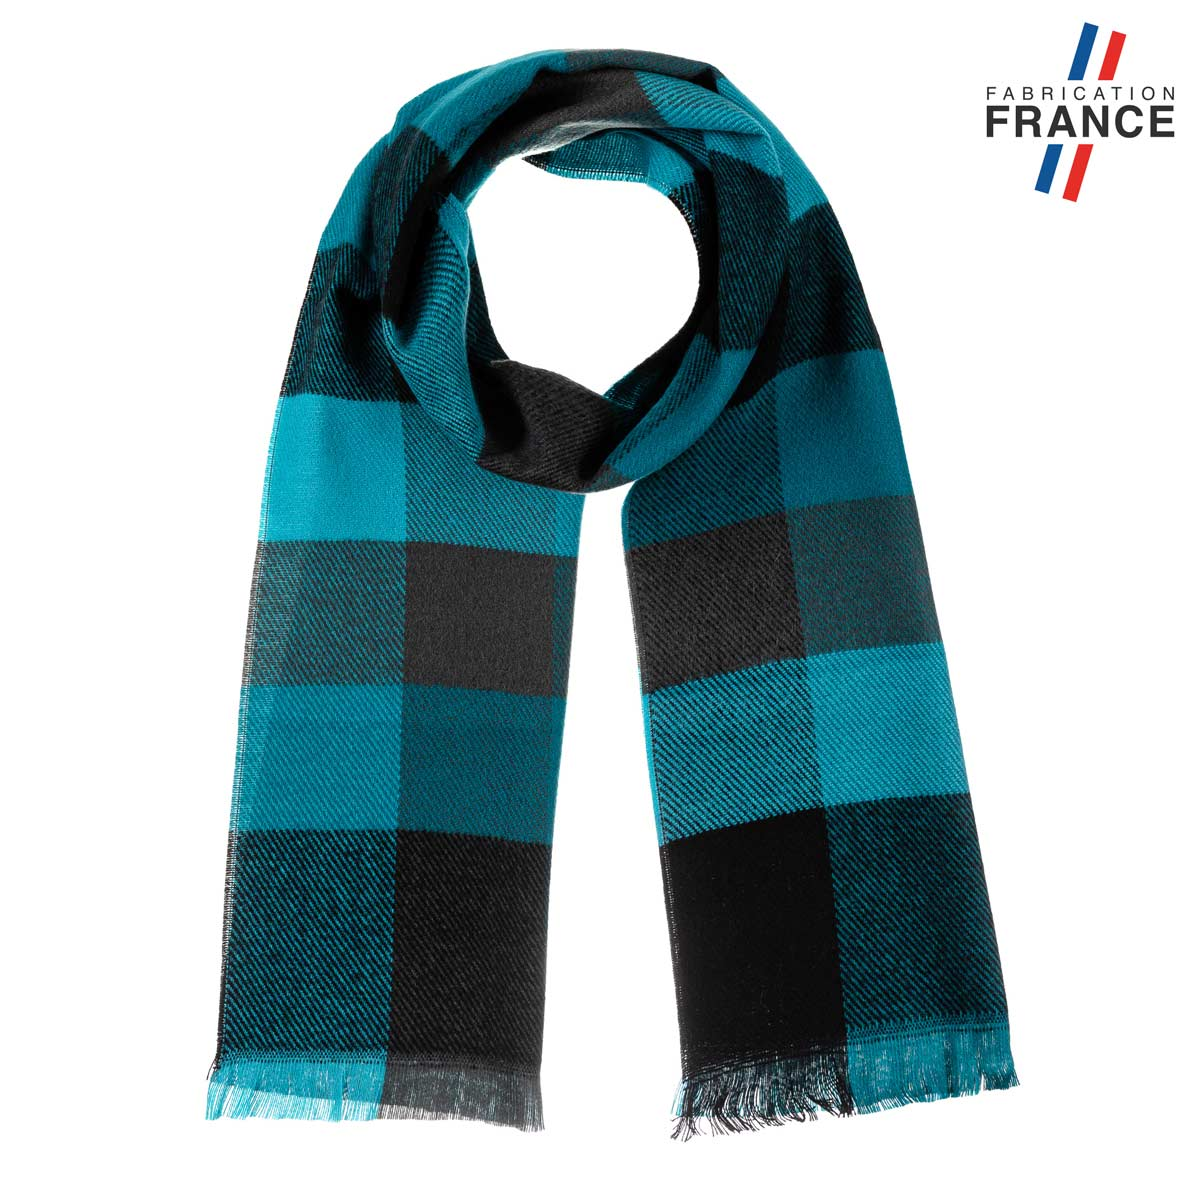 AT-06212_F12-1FR_Echarpe-a-carreaux-turquoise-fabrication-francaise